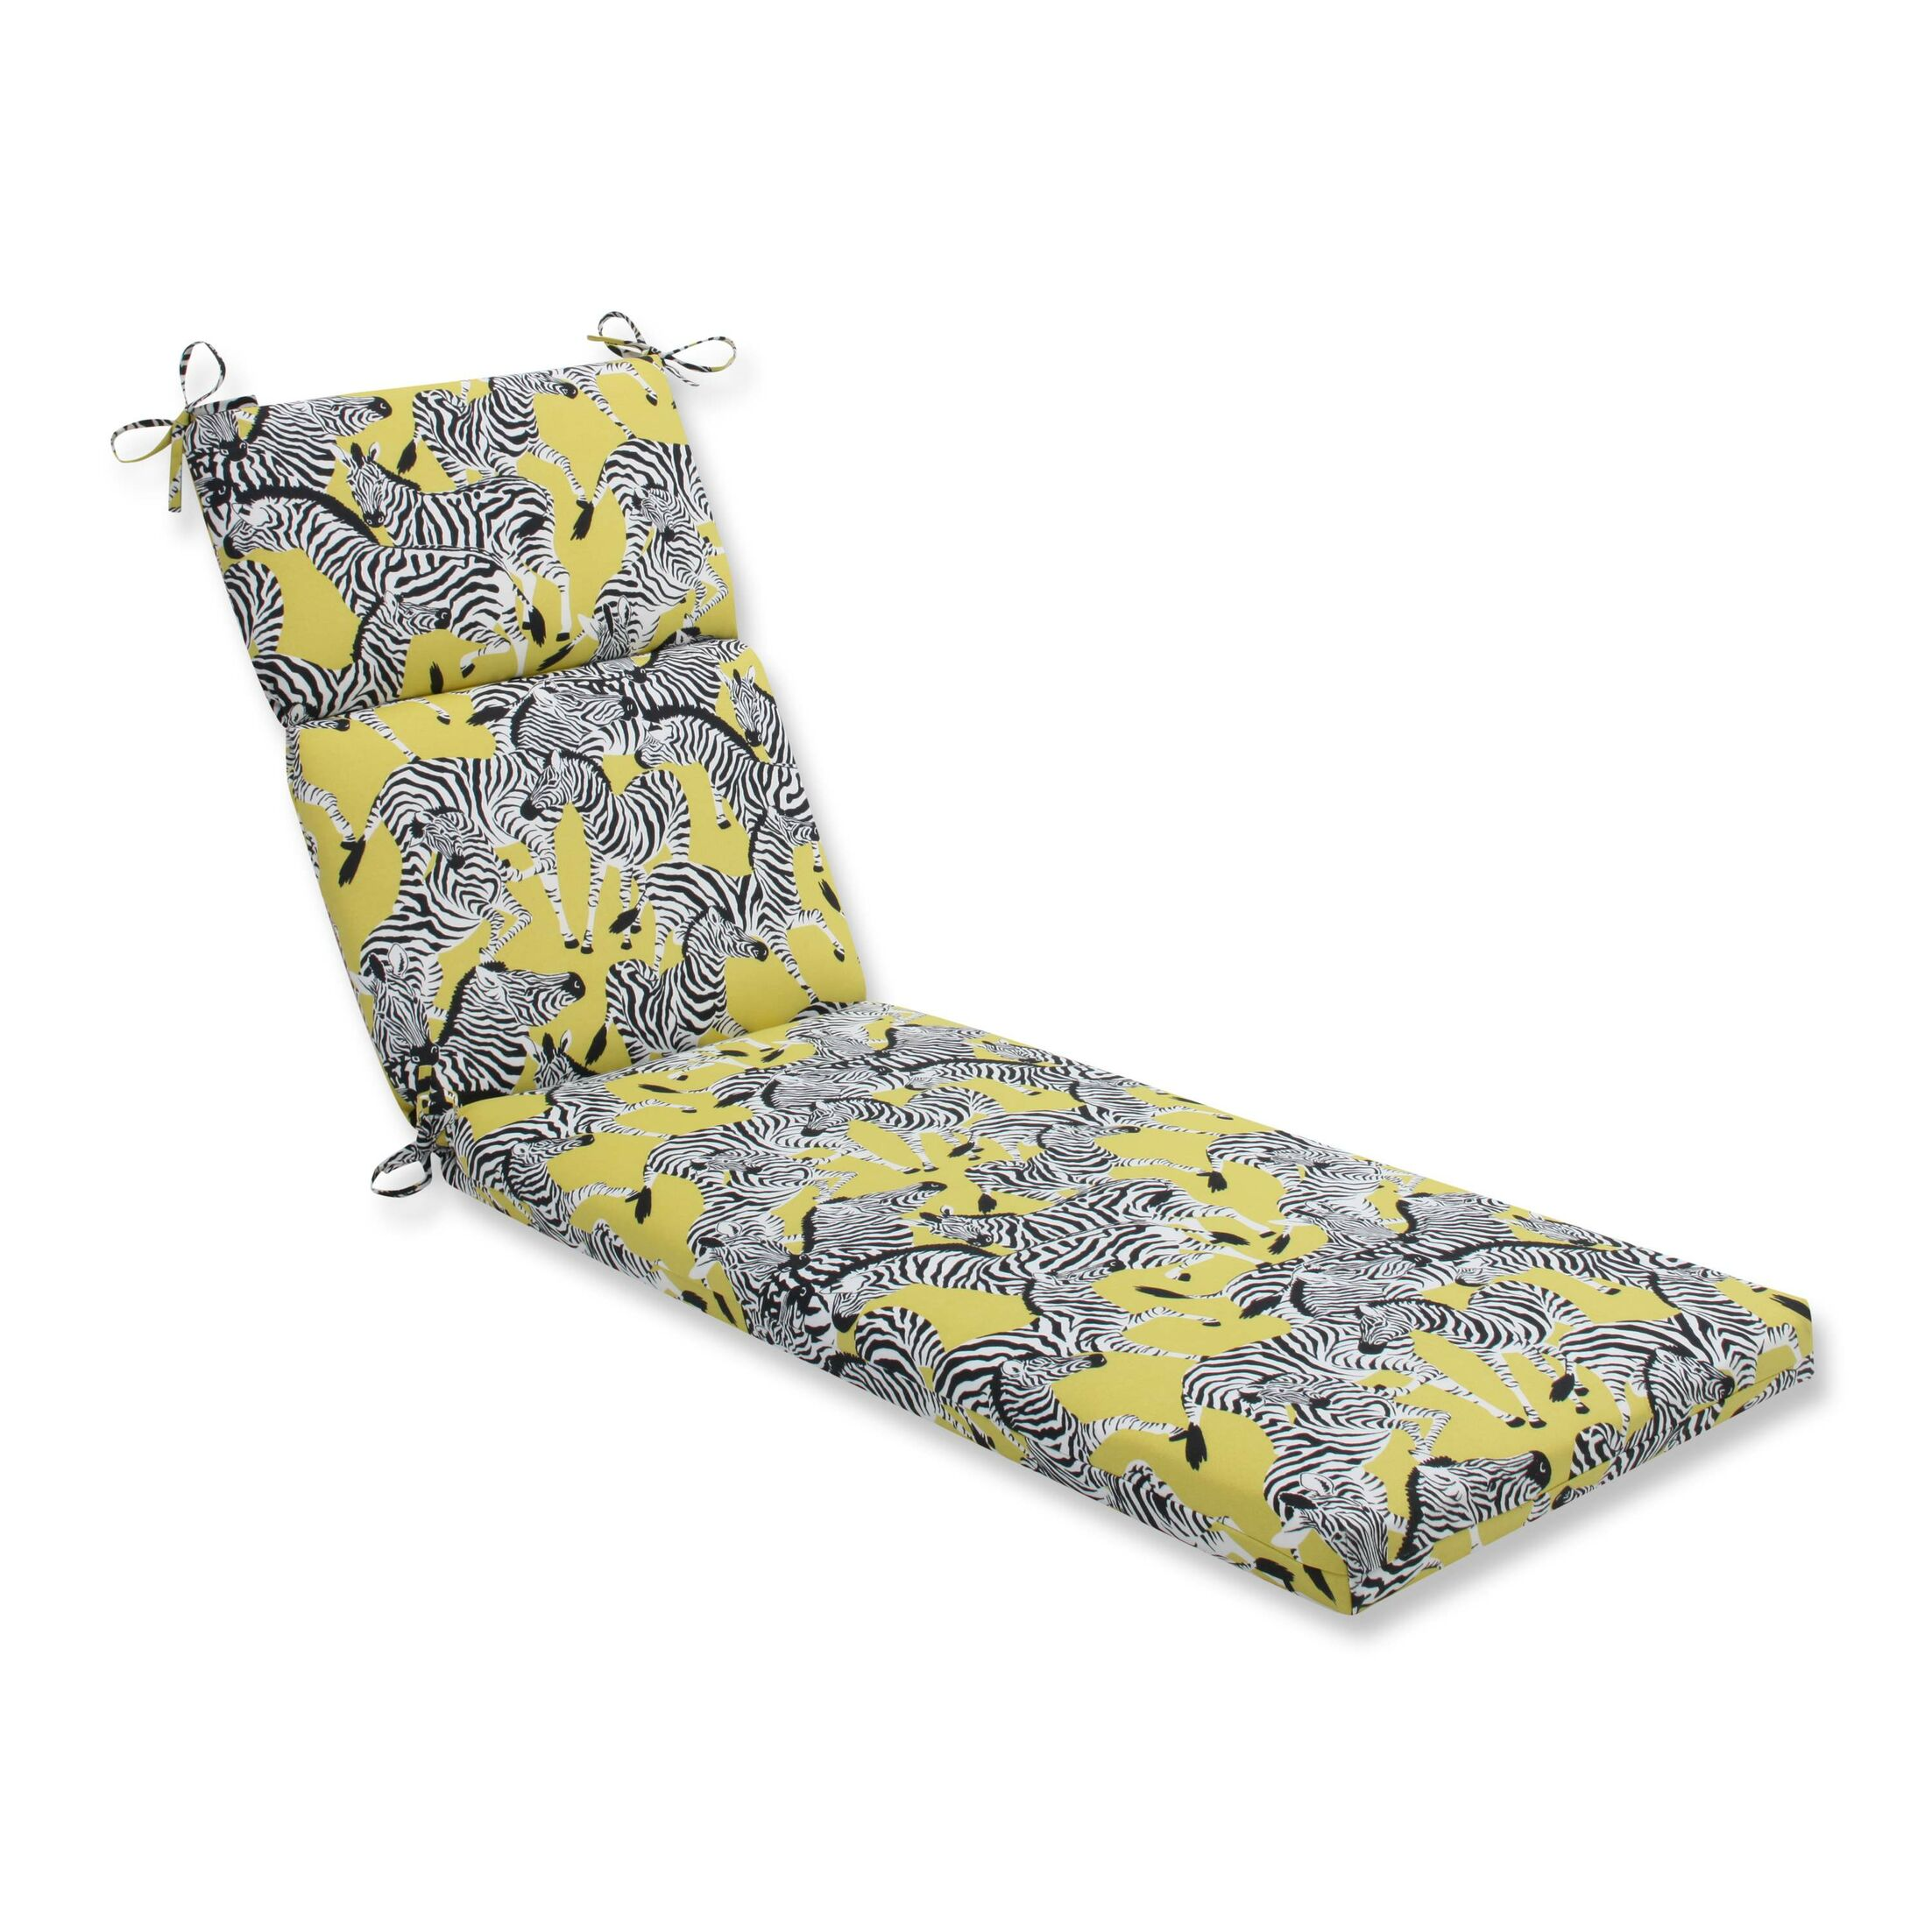 Herd Together Wasabi Indoor/Outdoor Chaise Lounge Cushion